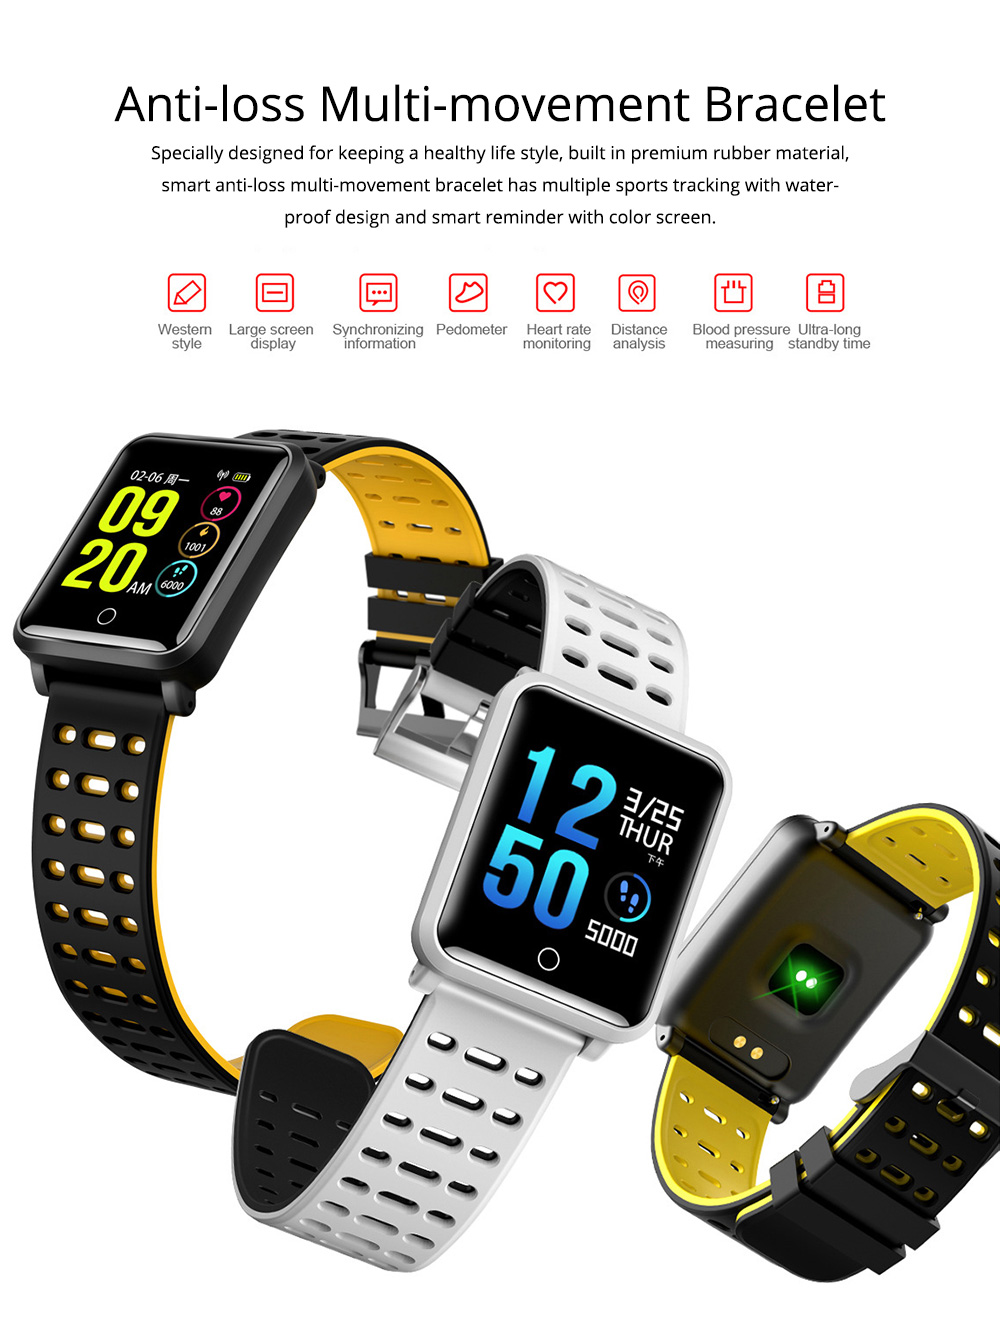 Smart Color Screen Watch for Heart Rate and Blood Pressure with IP68 Waterproof and Anti-loss Multi-movement Bracelet 0